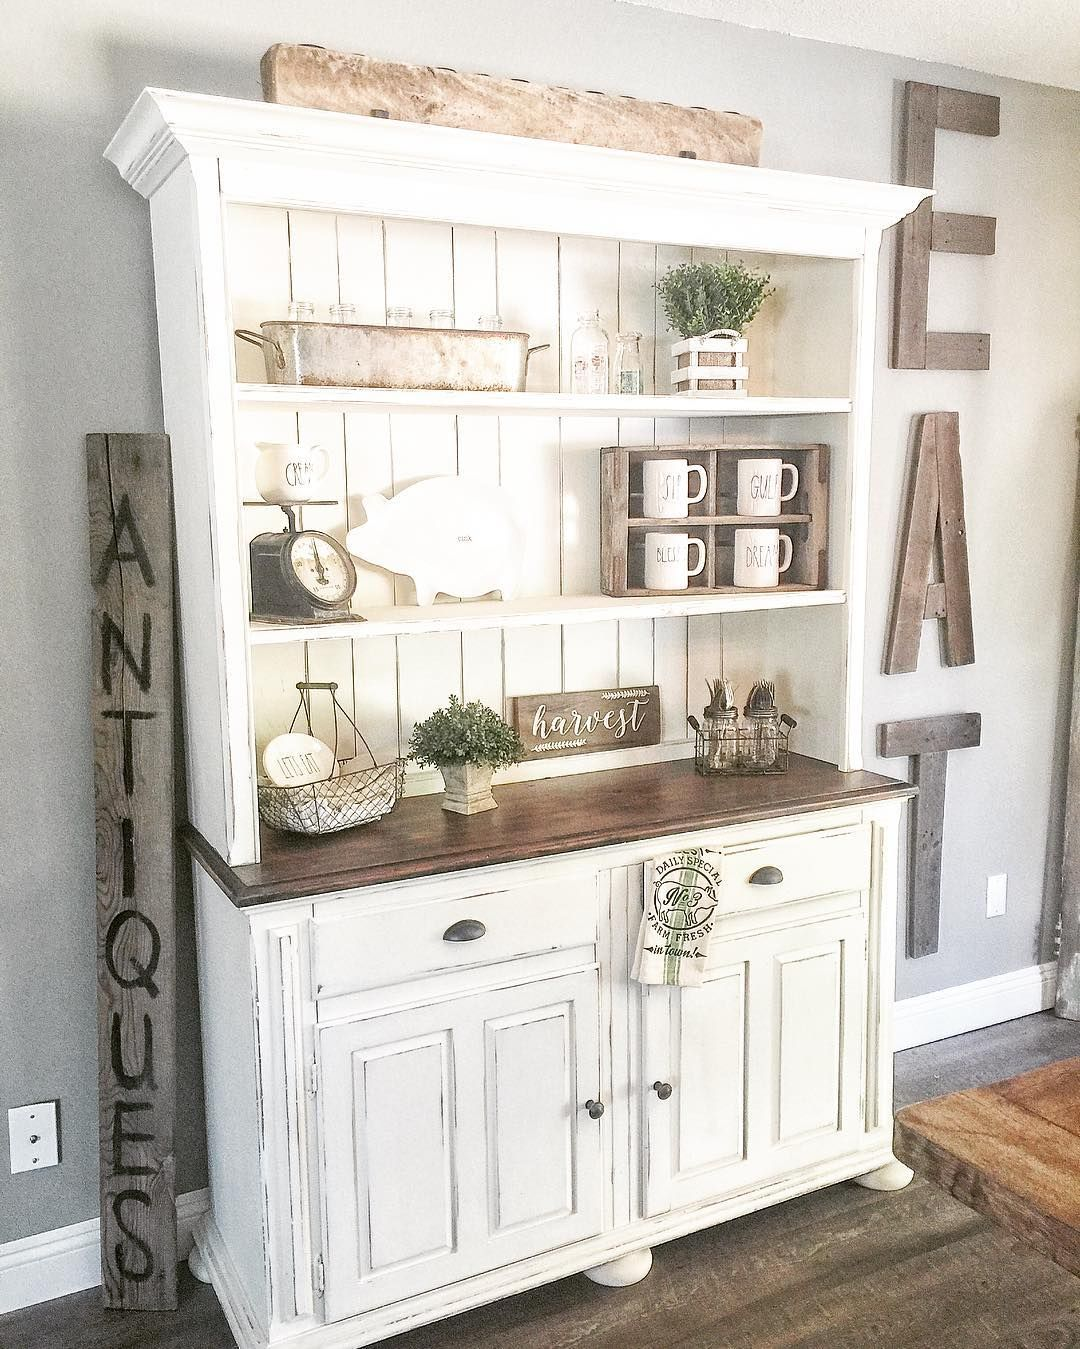 That hutch! *swoon*